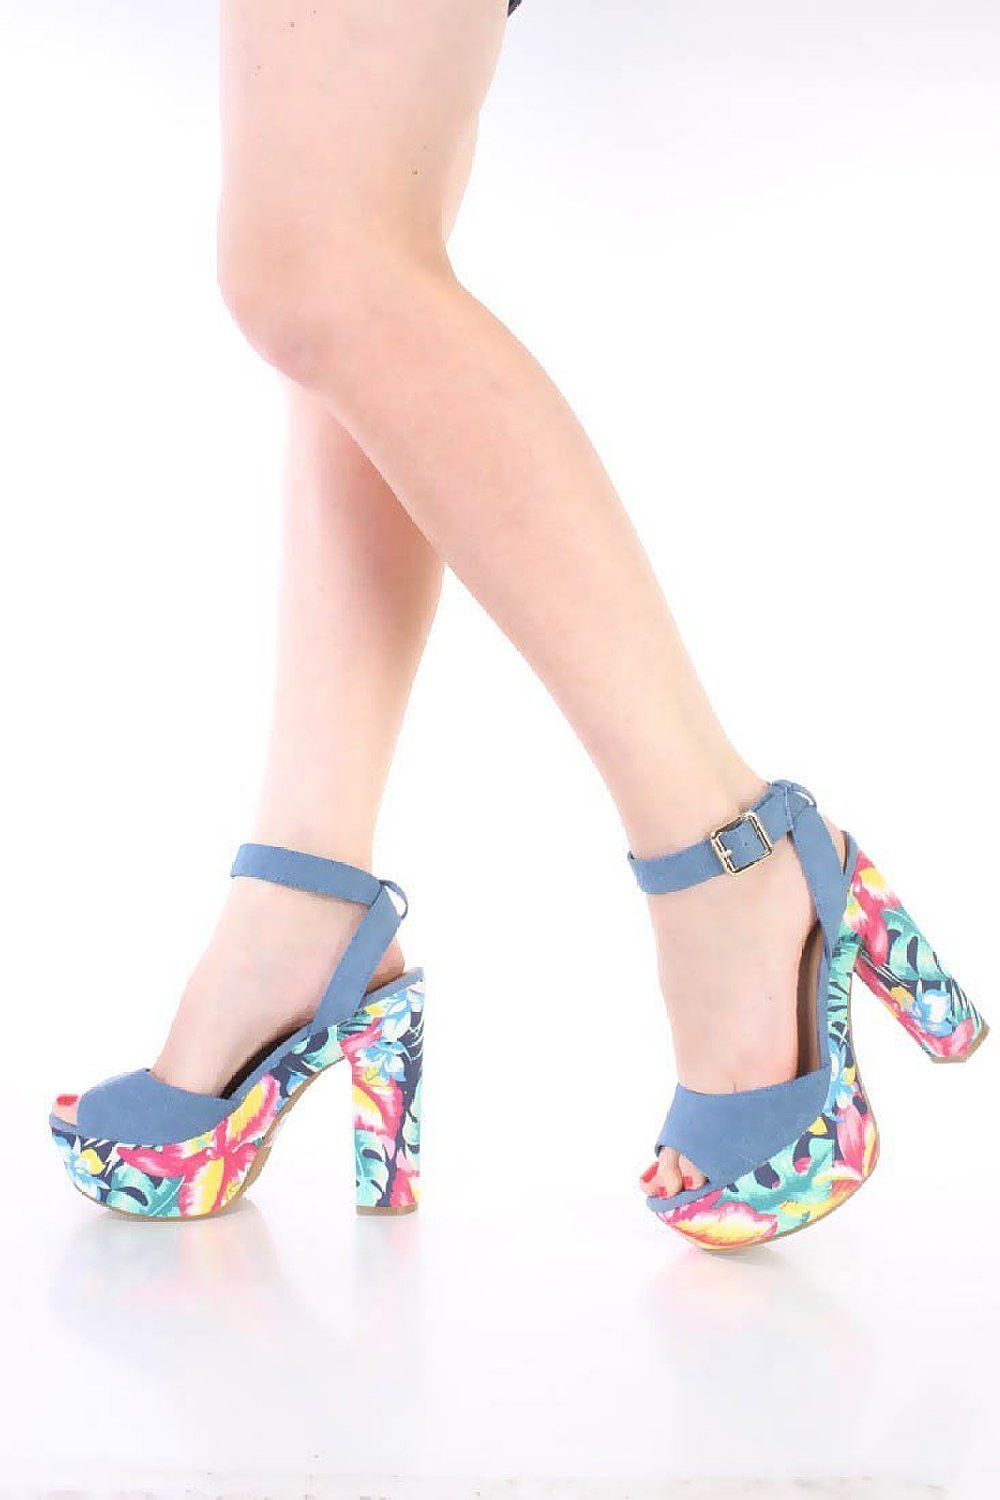 748a713569f Women s Shoes,Sexy Dresses,Occasion Dresses,Women s Tops,Trendy Tops,Maxi  Skirts, Prom Shoes,Funky Shoes, Womens Dress Shoes,Stylish Outwear,Women  Sexy Cute ...